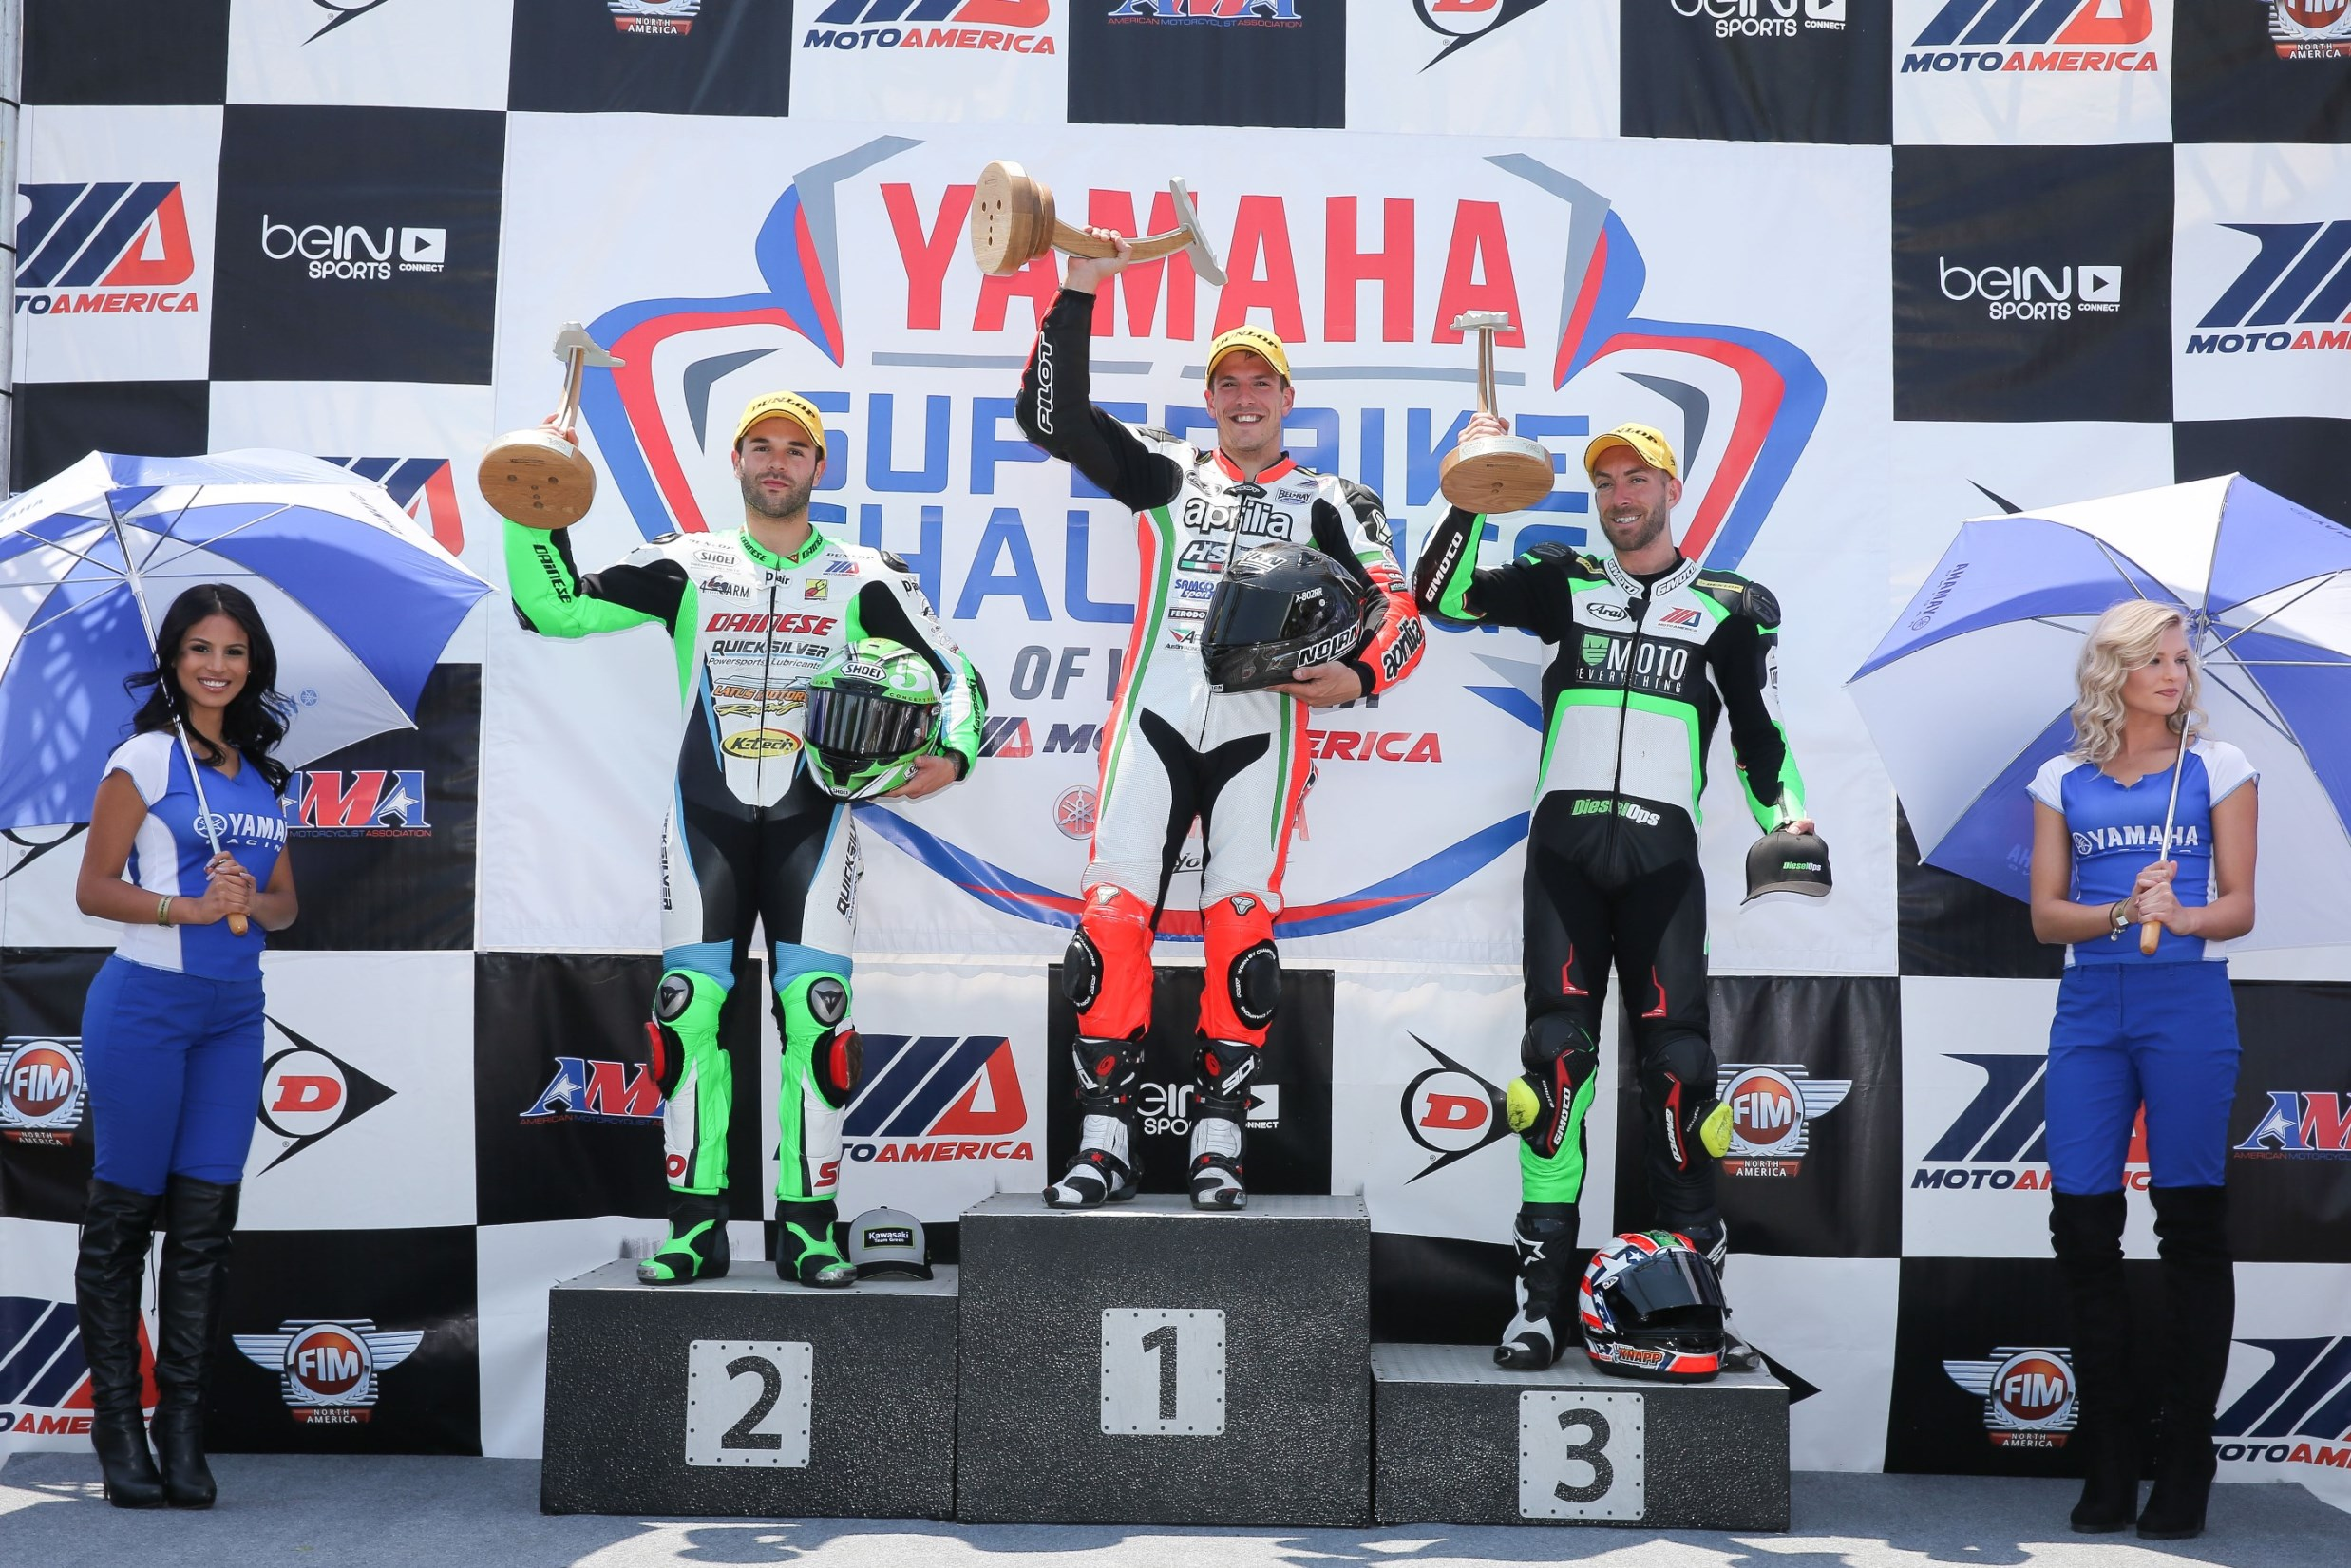 APRILIA HSBK RACING FORGES ON IN VIRGINIA, MAINTAINS LEAD IN SUPERSTOCK 1000